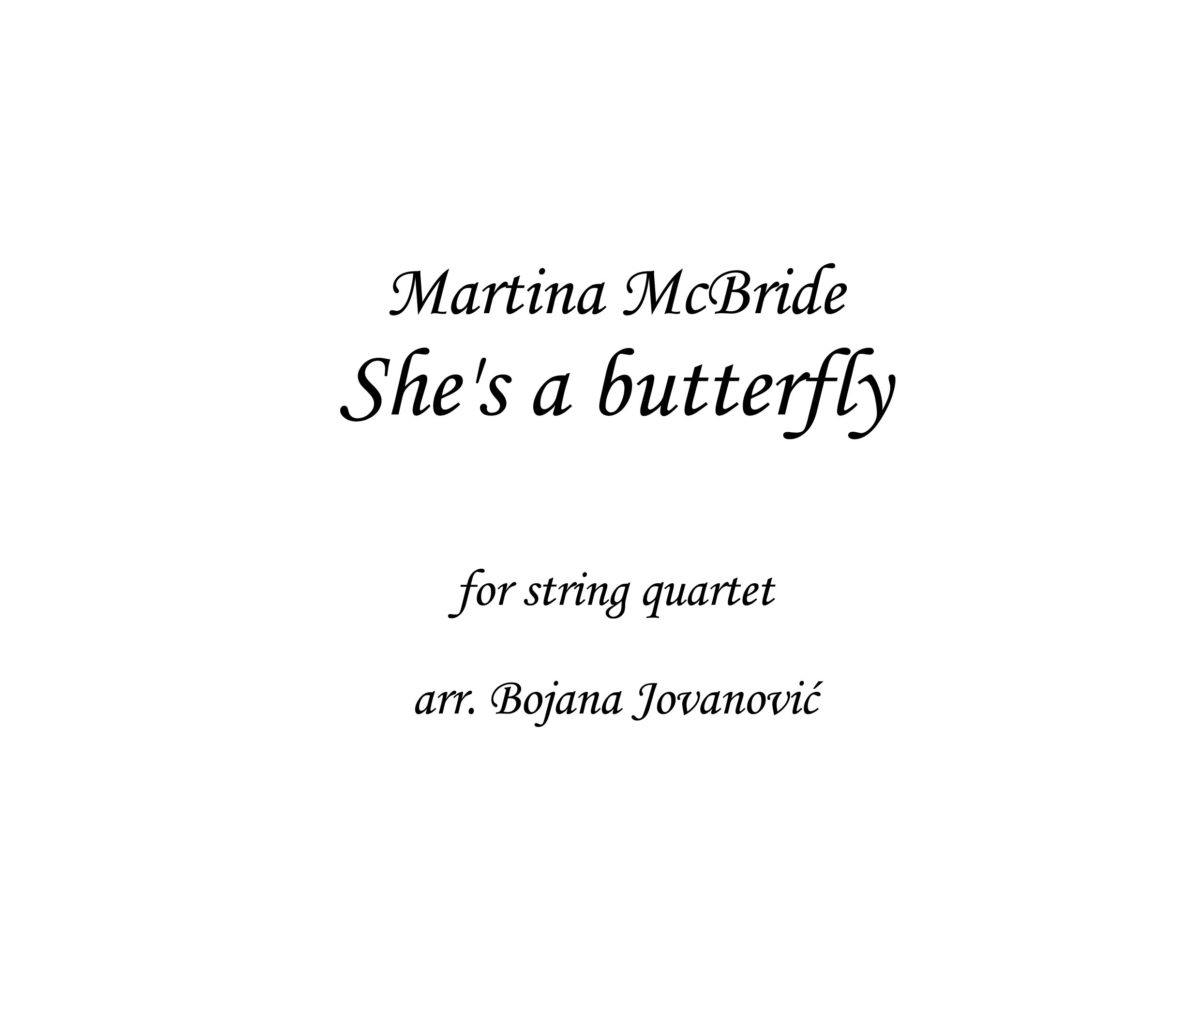 She's a butterfly Martina McBride Sheet music